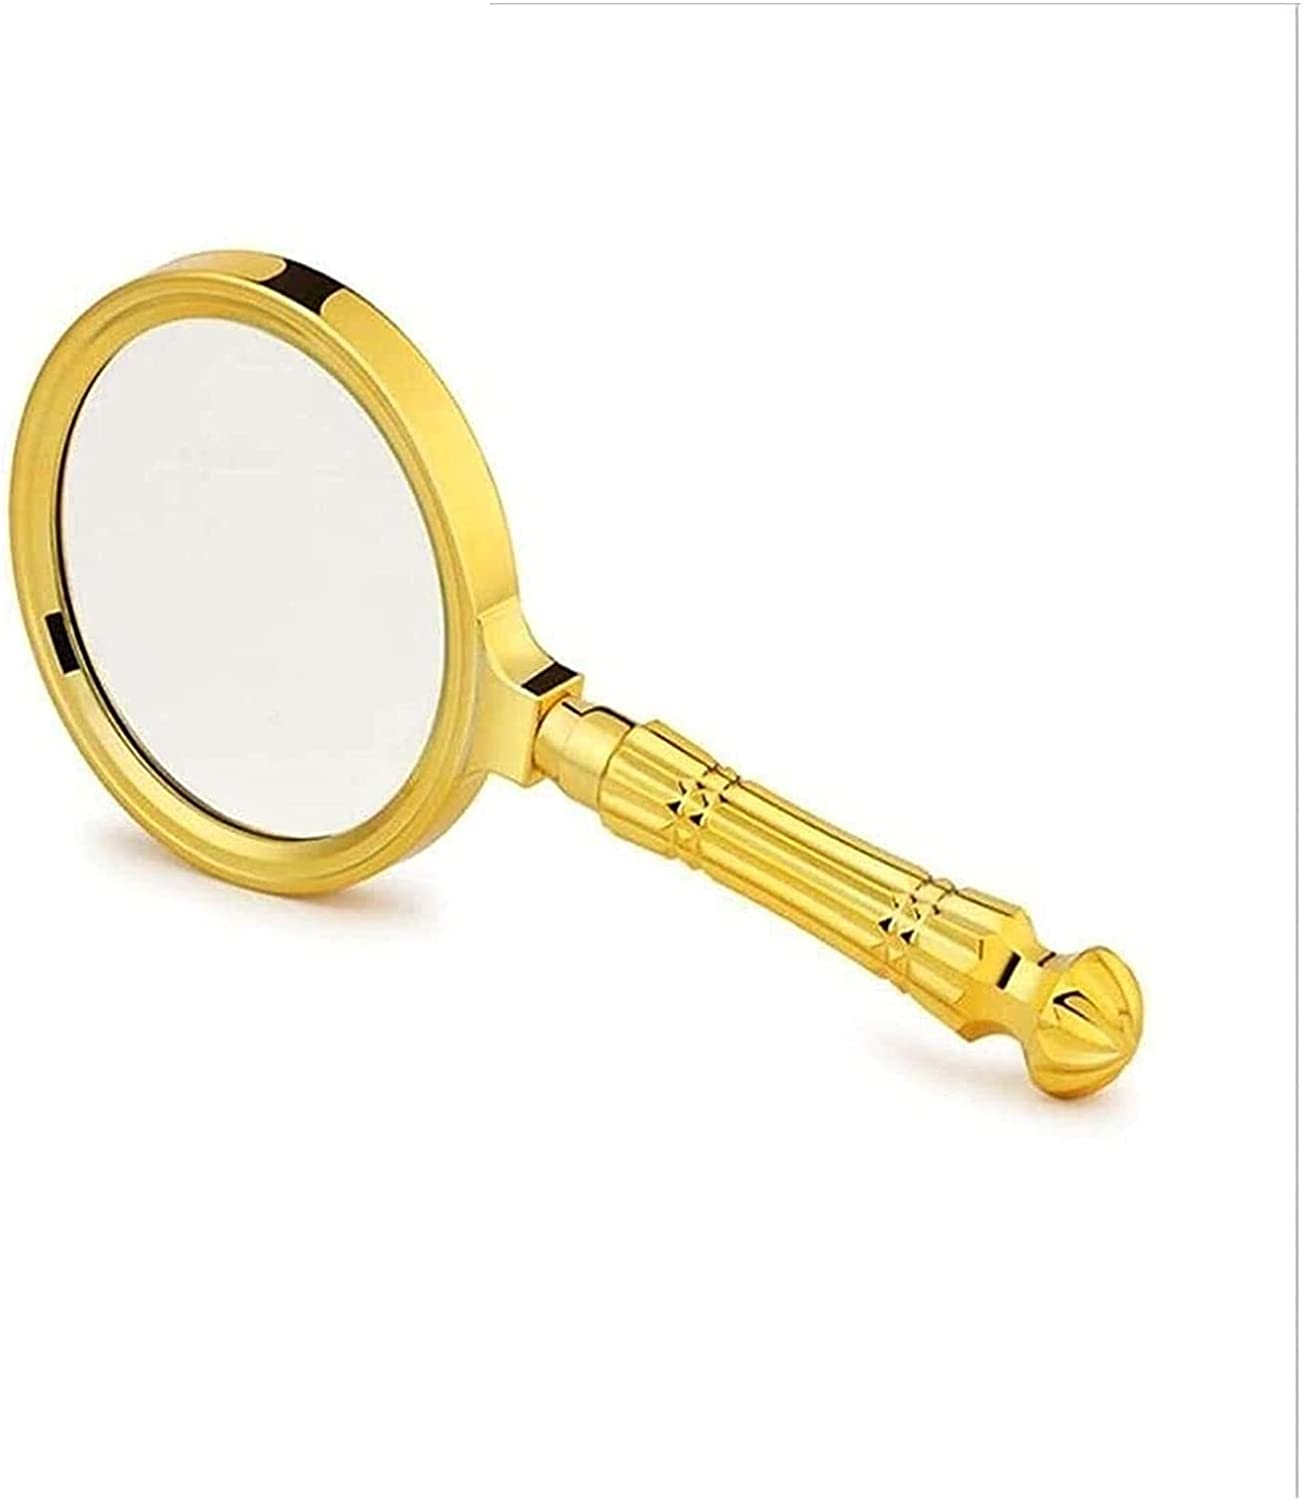 WHZG Magnifying High quality new San Jose Mall Glass Hand Holding Held Magnify